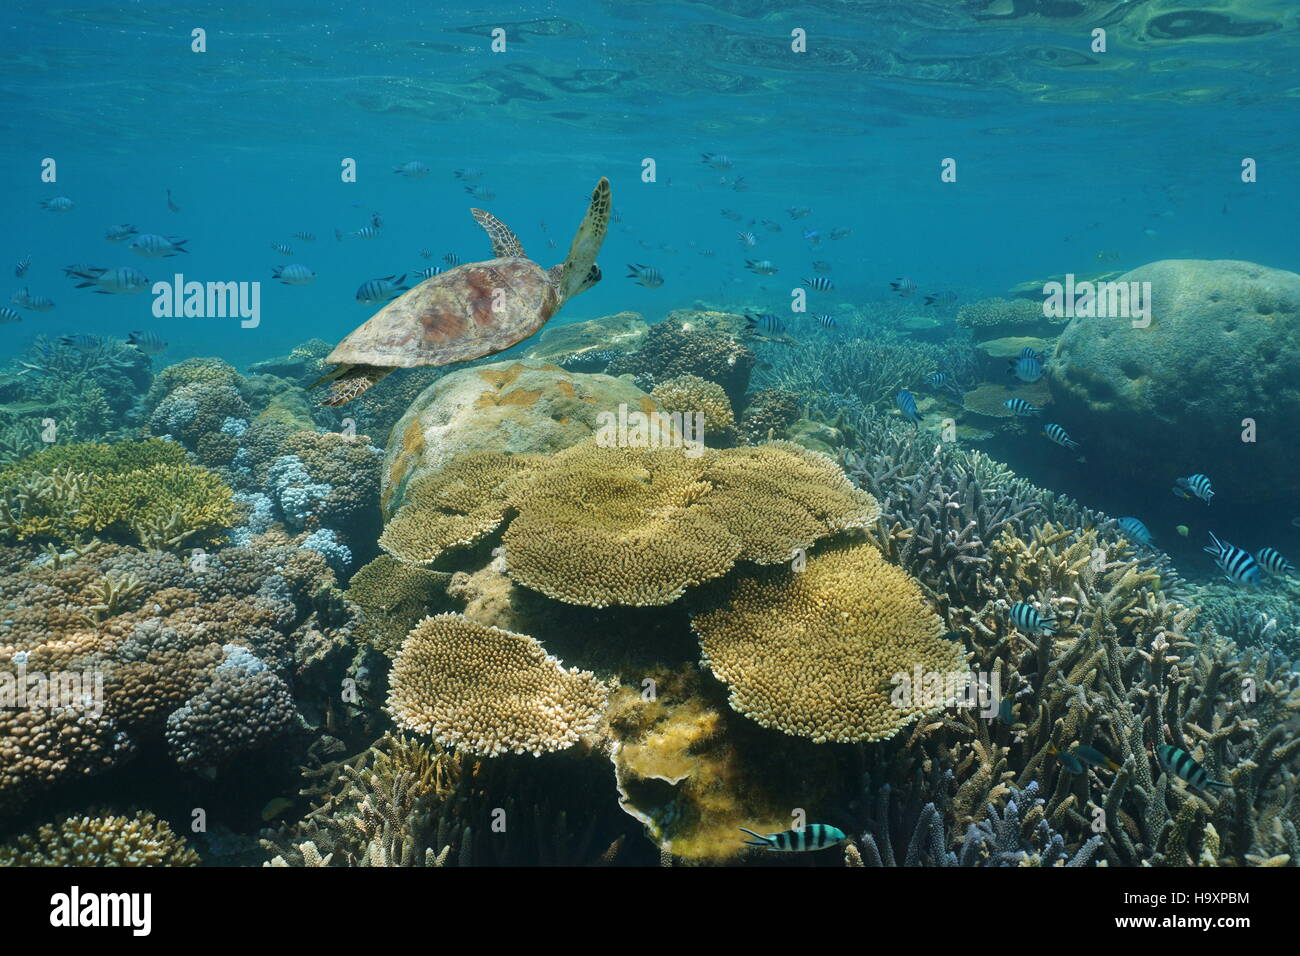 Shallow coral reef underwater with a green sea turtle and fish, New Caledonia, south Pacific ocean - Stock Image